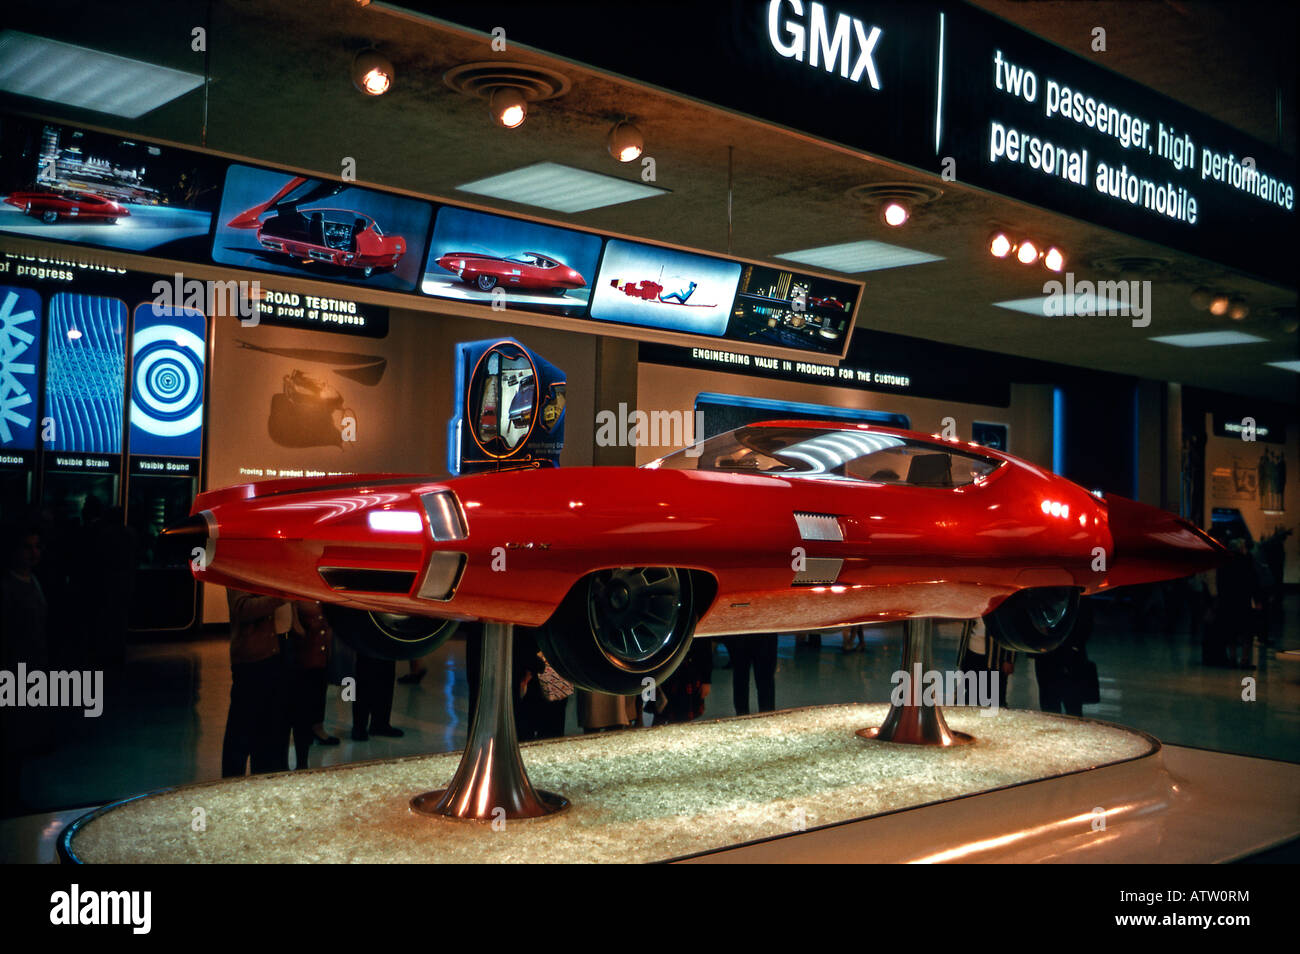 General Motors GM-X Stiletto concept car, New York World's Fair 1964-5 Photo Stock